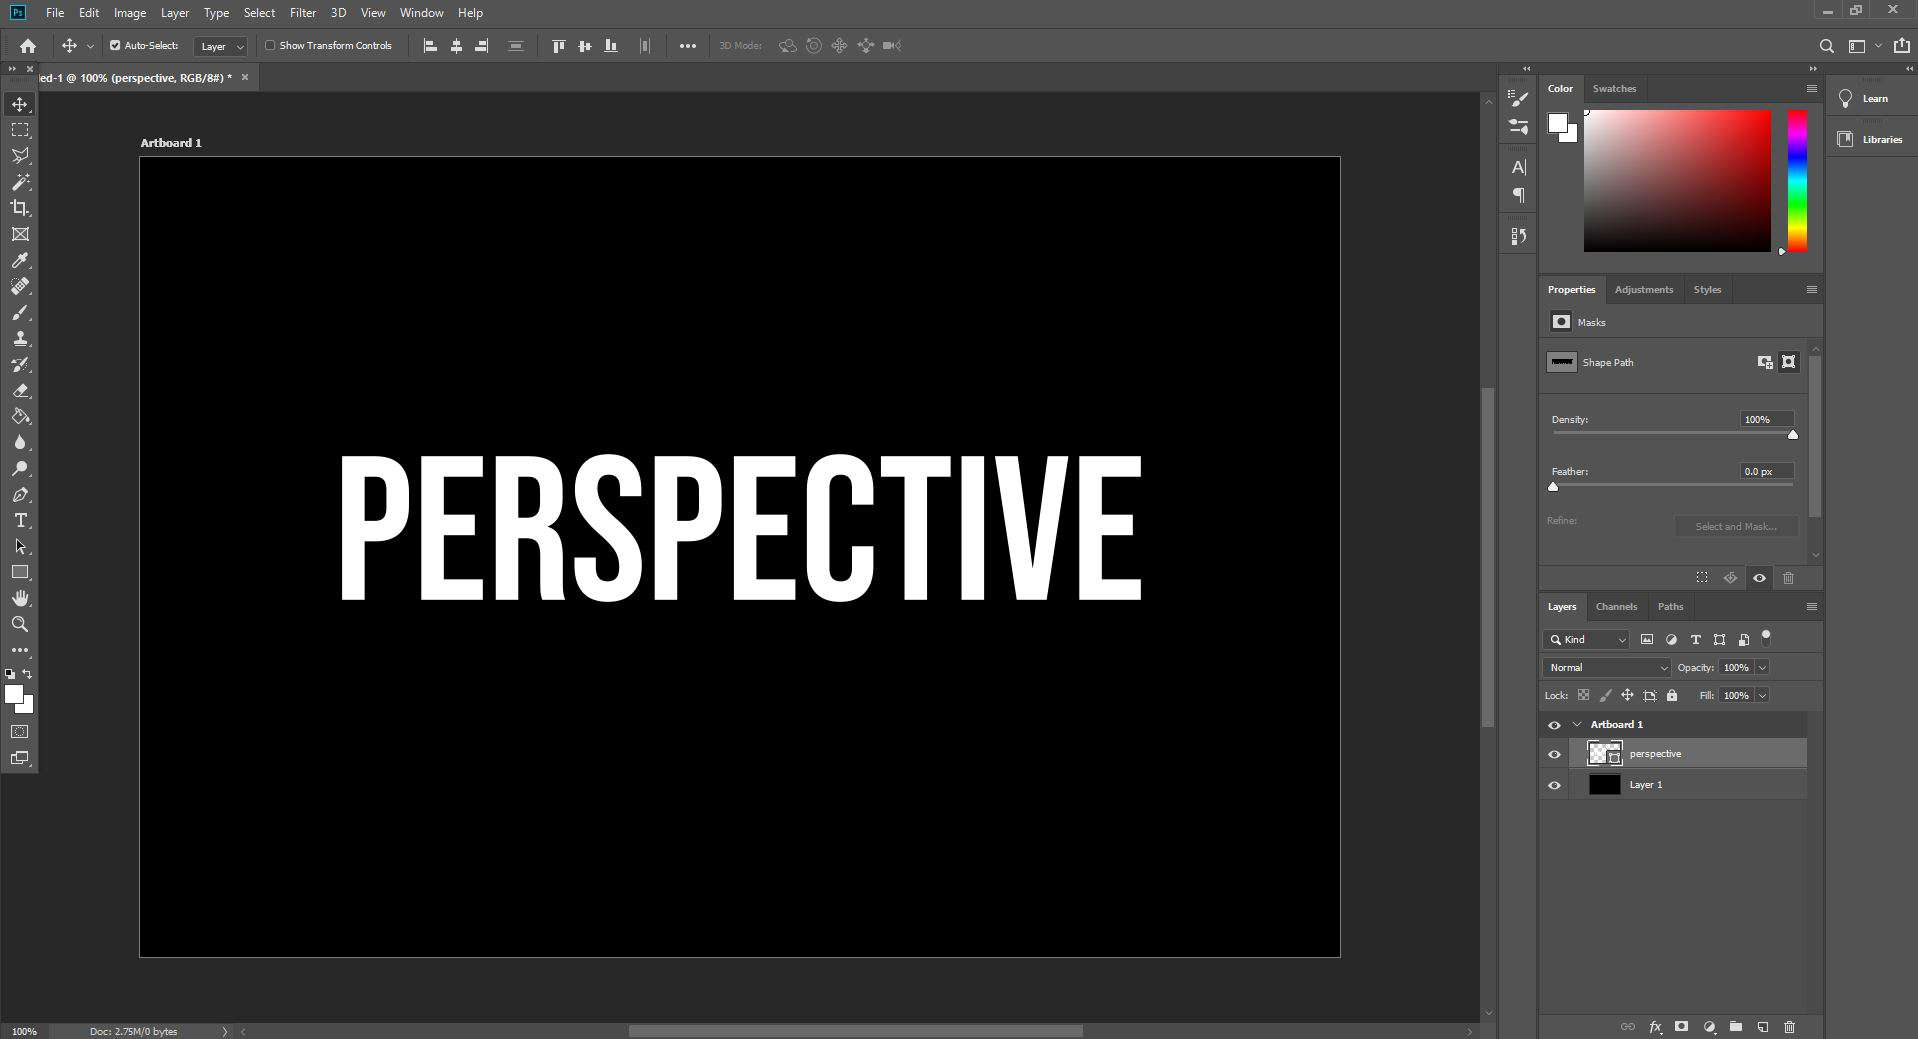 perspective text open in photoshop